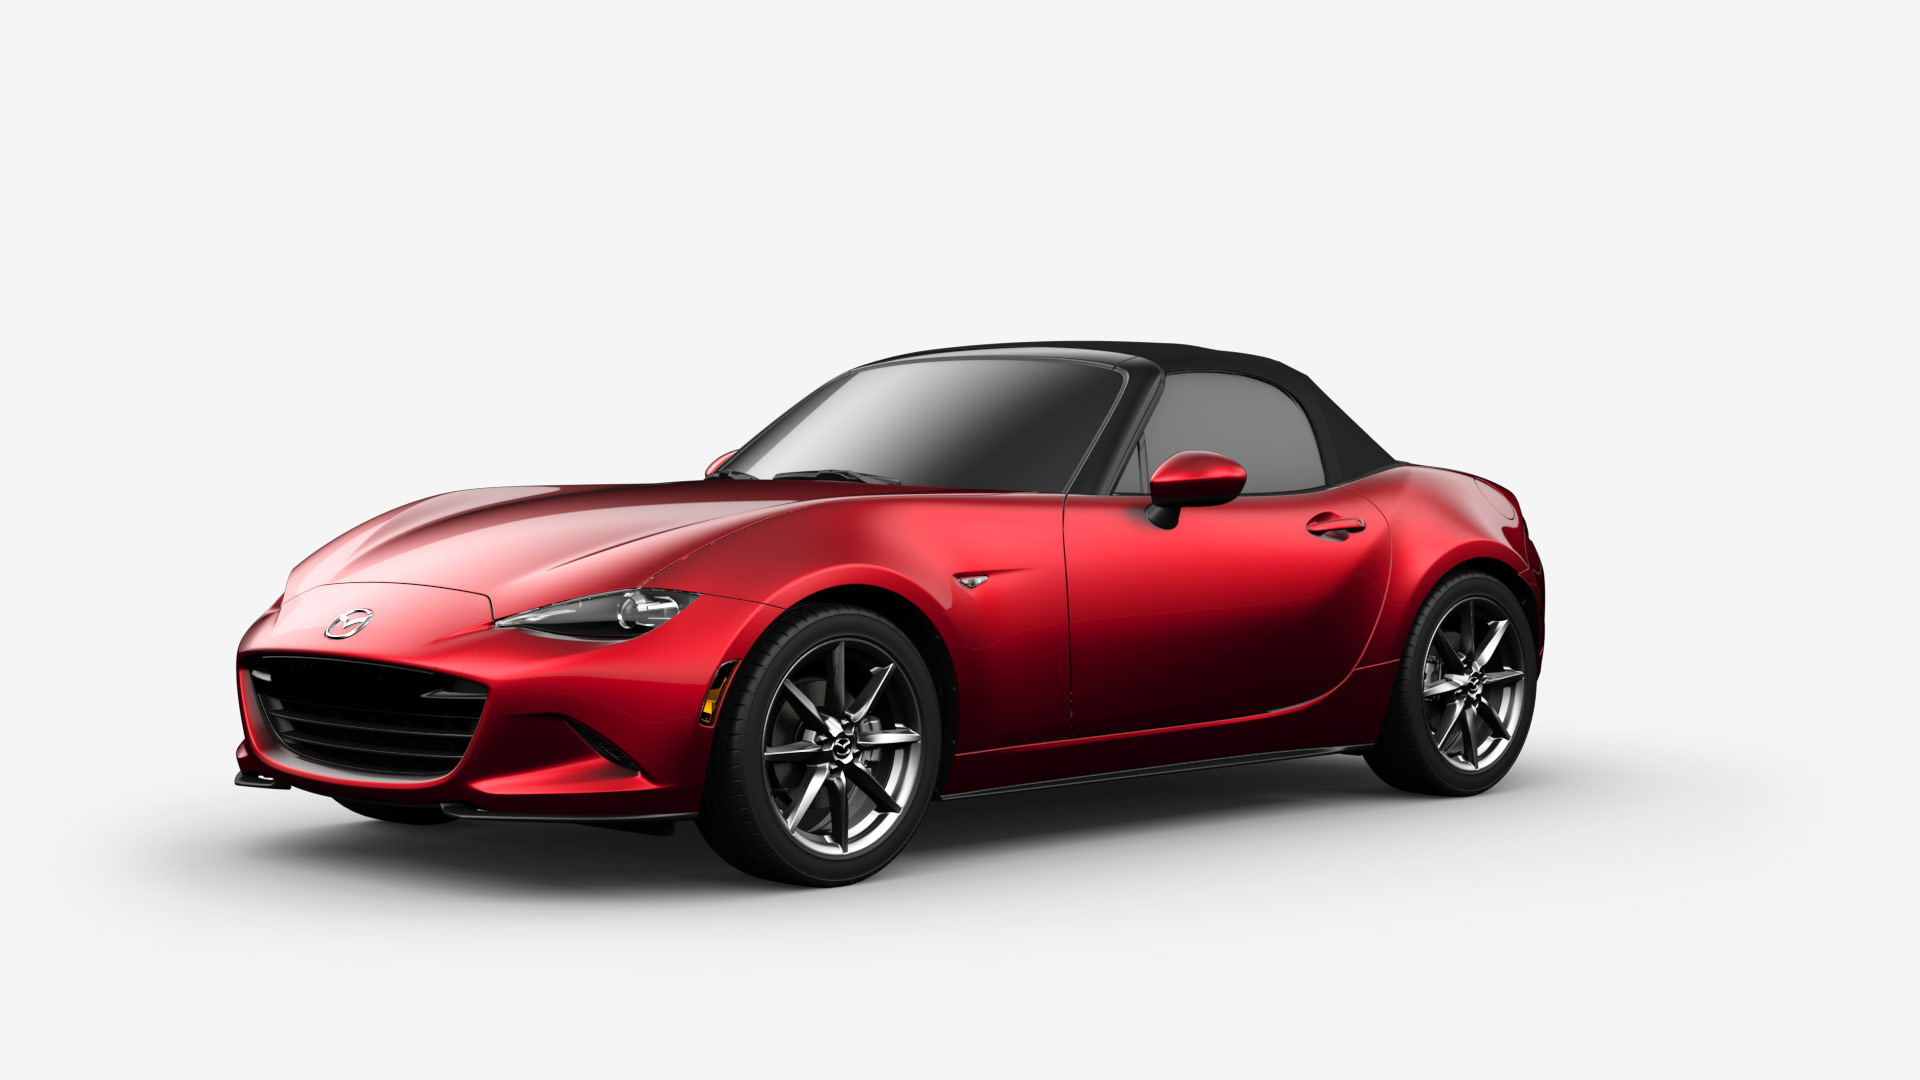 2018 Mazda MX 5 Miata Convertible Roadster | Mazda USA